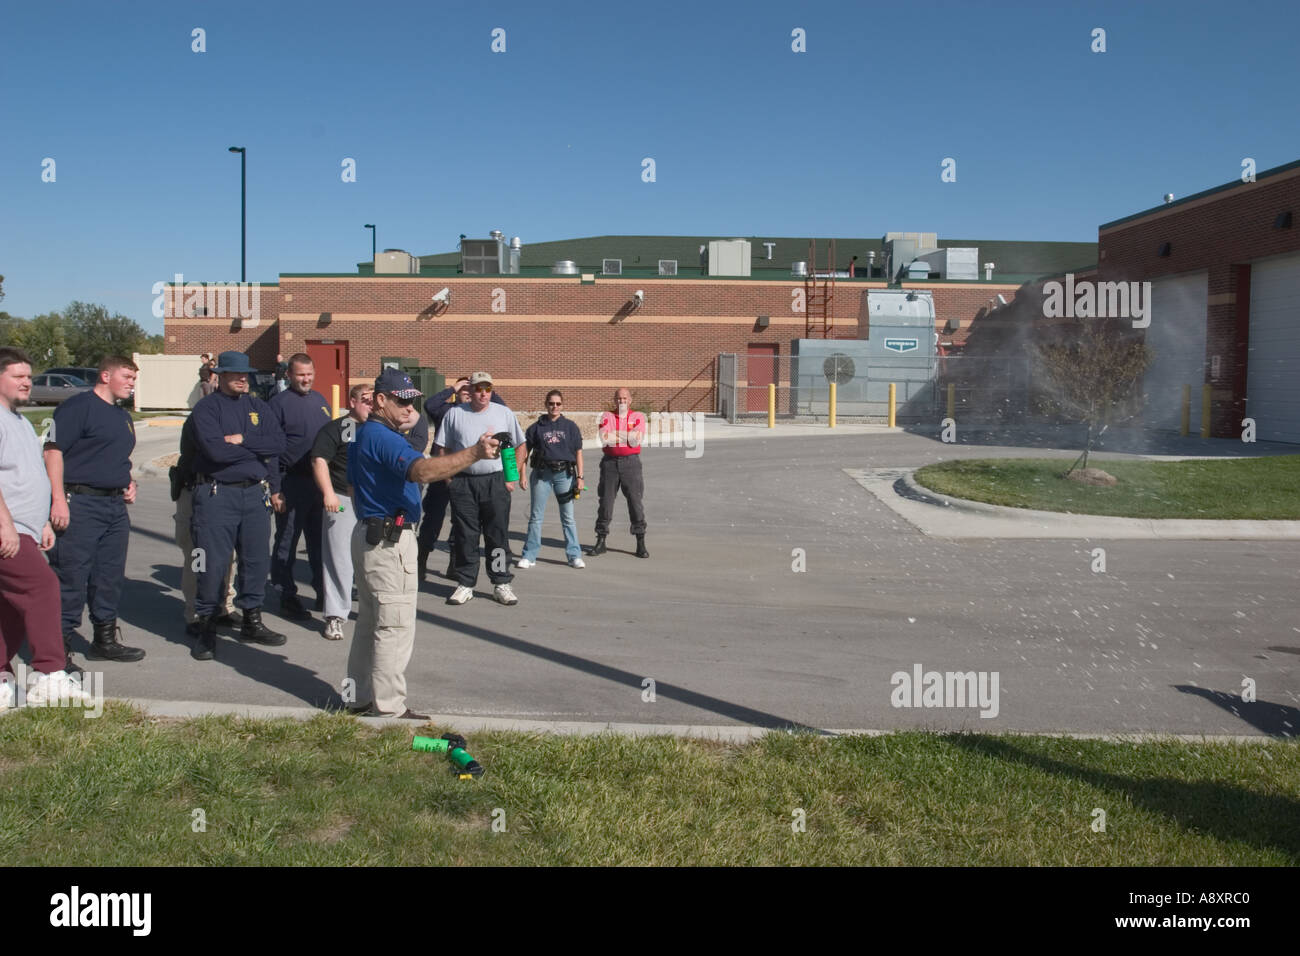 Instructor demonstrates pepper spray for a group of law enforcement and prison officers - Stock Image